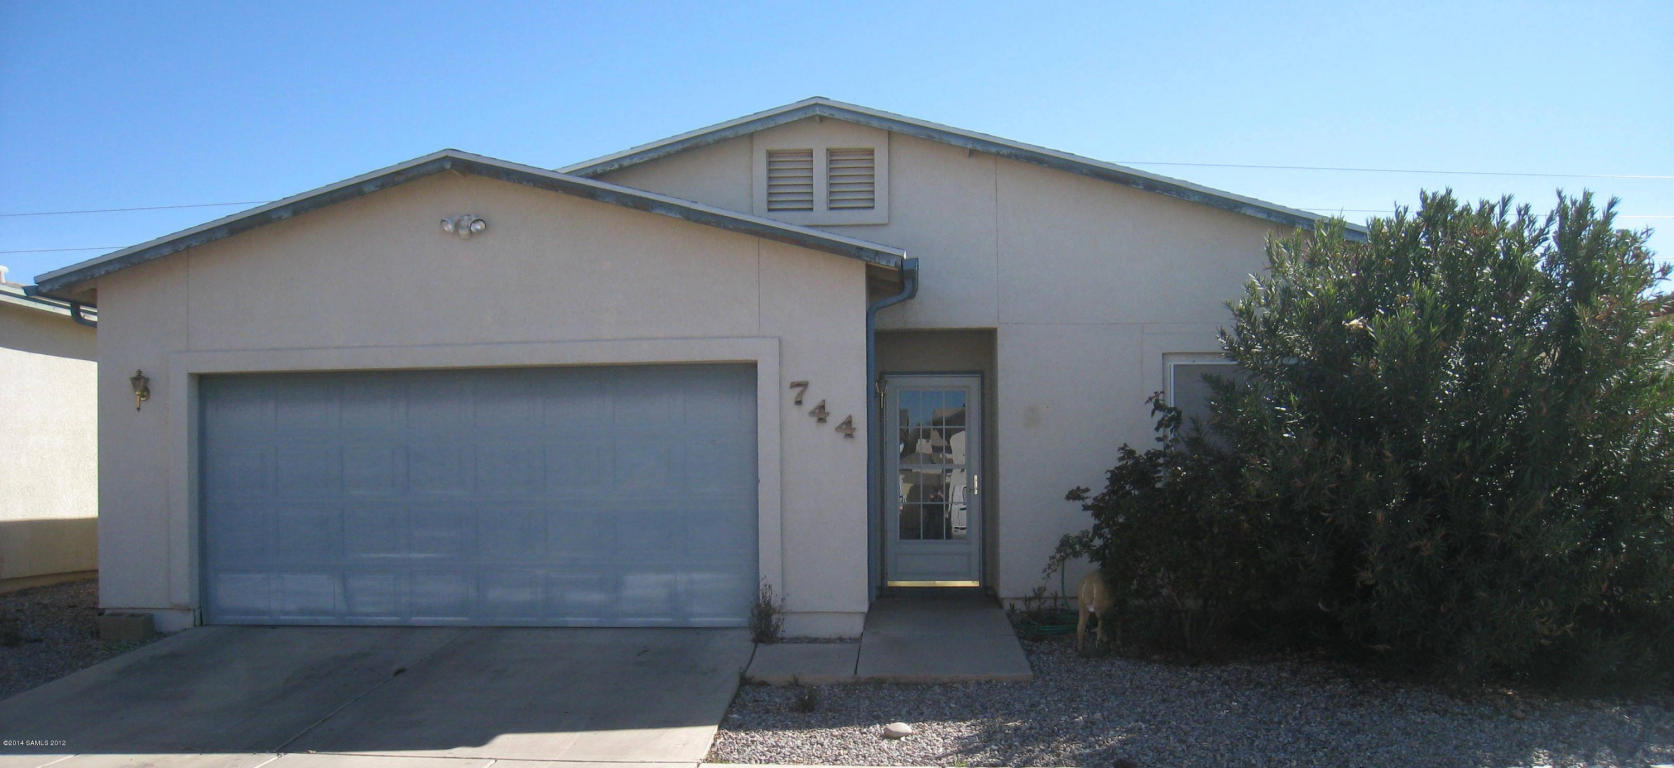 Rental Homes for Rent, ListingId:34753617, location: 744 Four Winds Circle Sierra Vista 85635